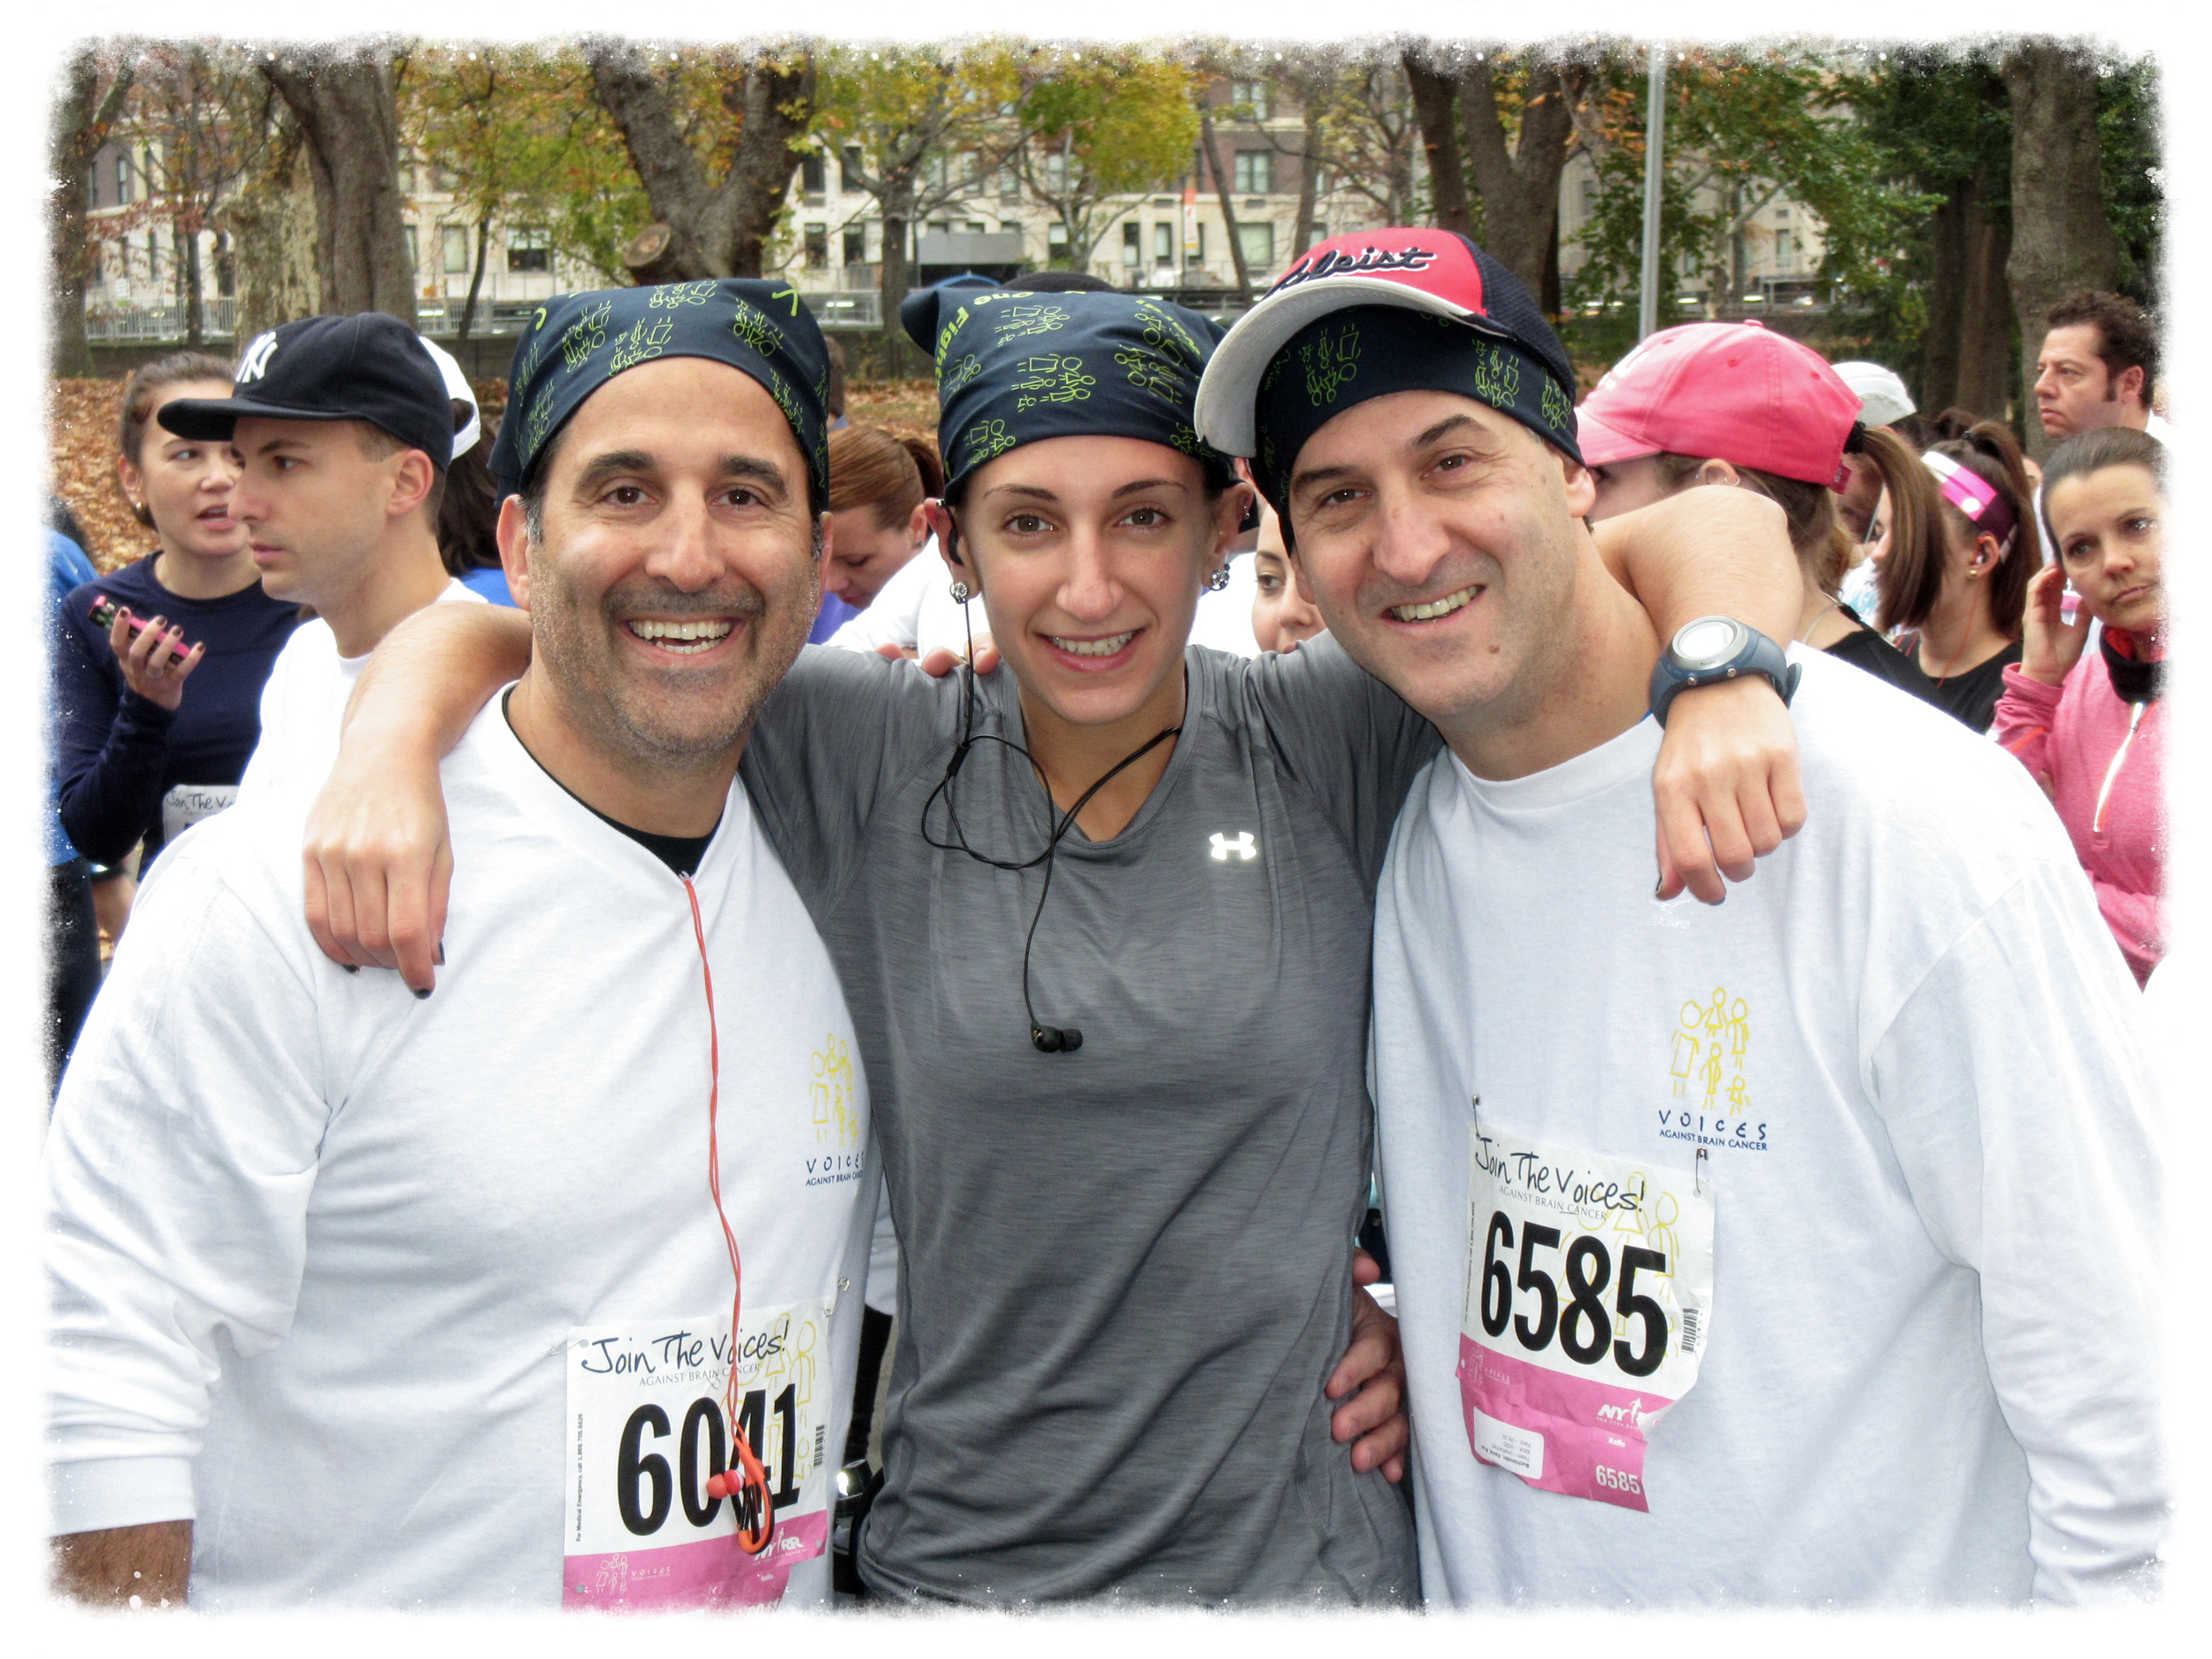 Steven, Allison and David run to support Voices Against Brain Cancer in Central Park.